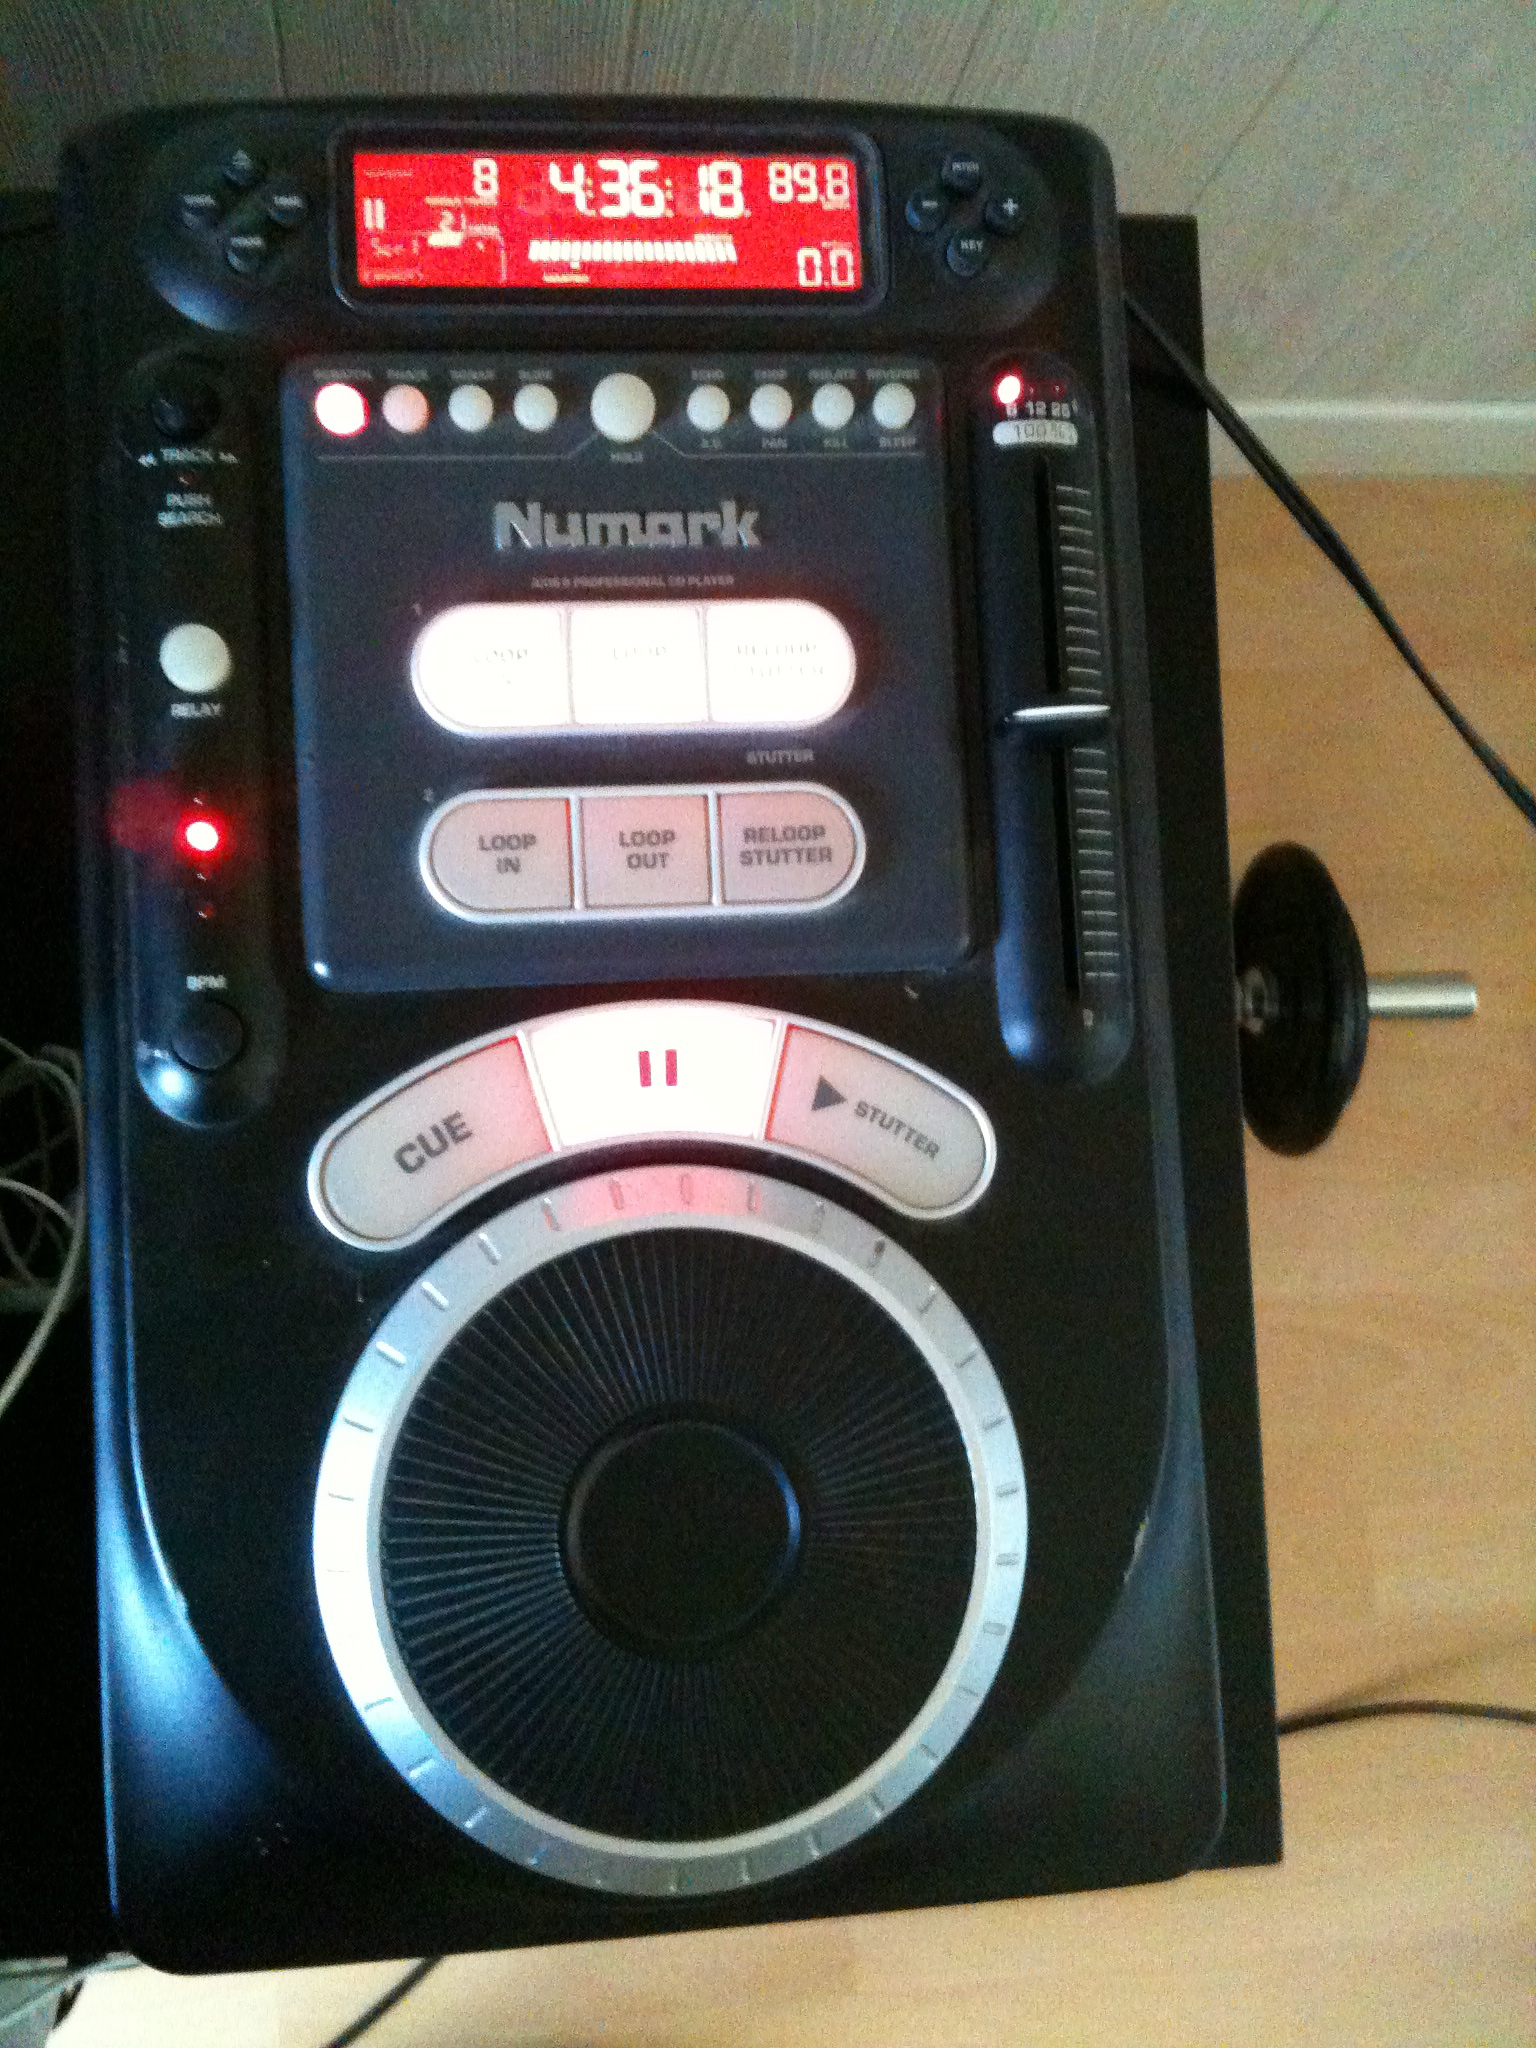 Numark AXIS-9 | DJ Equipment Review - DJBooth